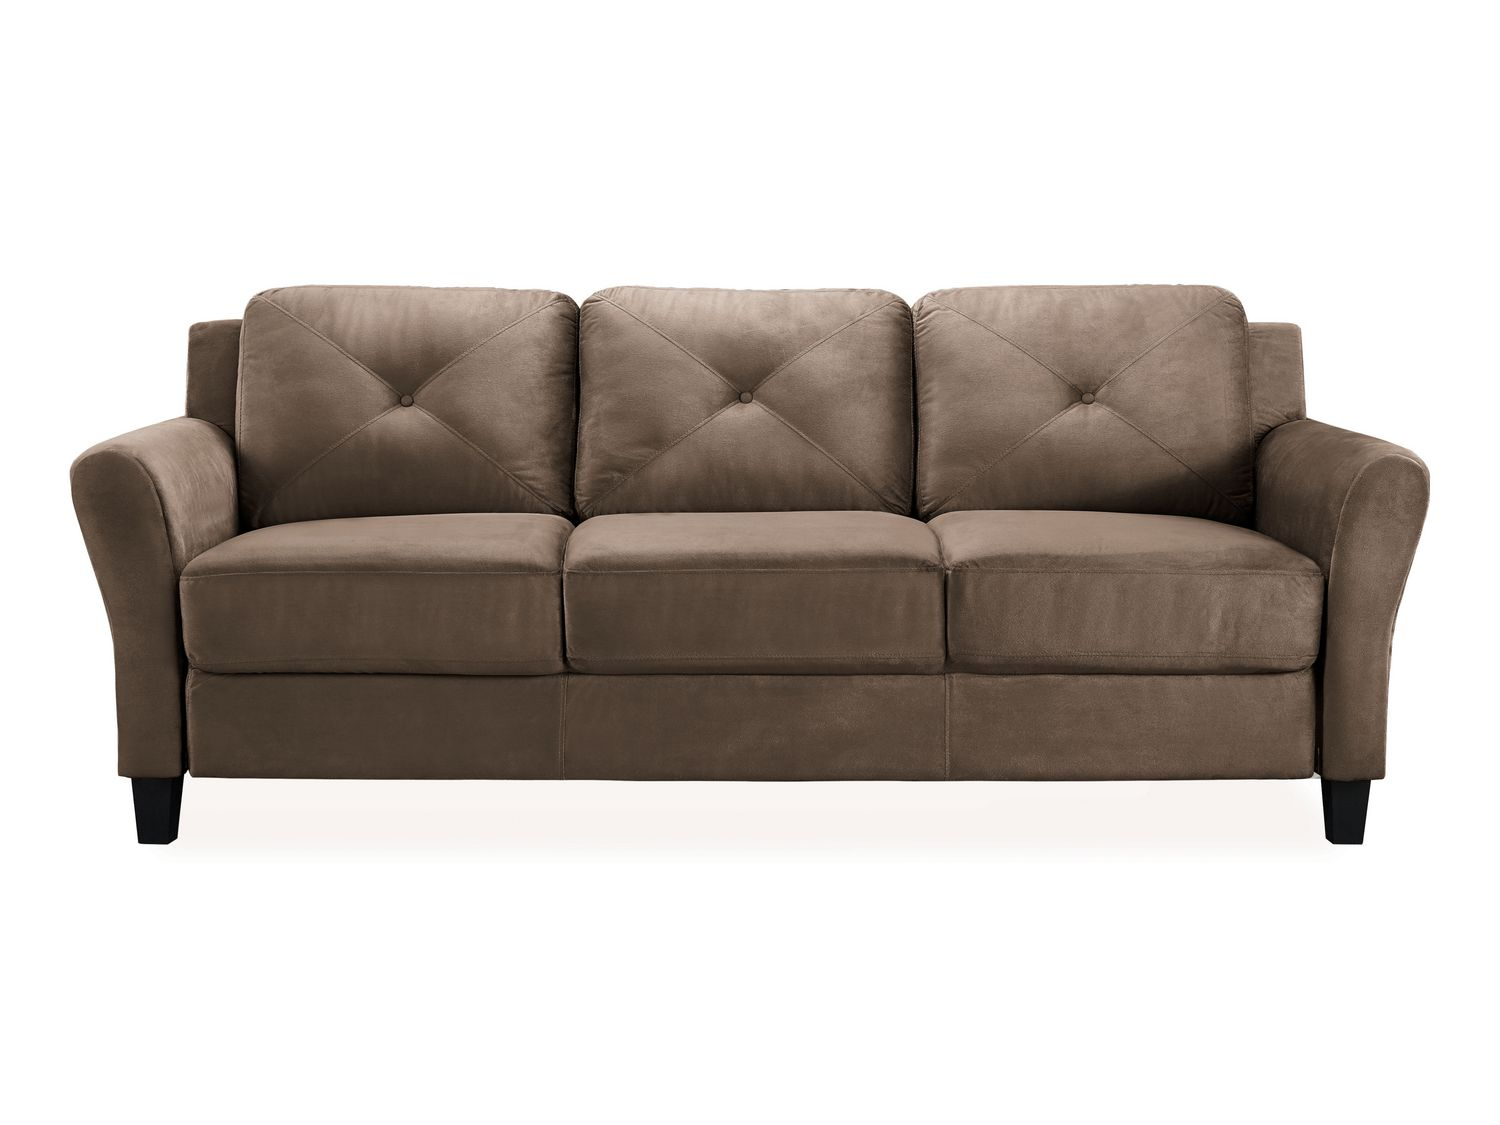 navasota queen sofa sleeper reviews corte ingles cama oferta lifestyle solutions taryn brown ready to assemble walmart canada